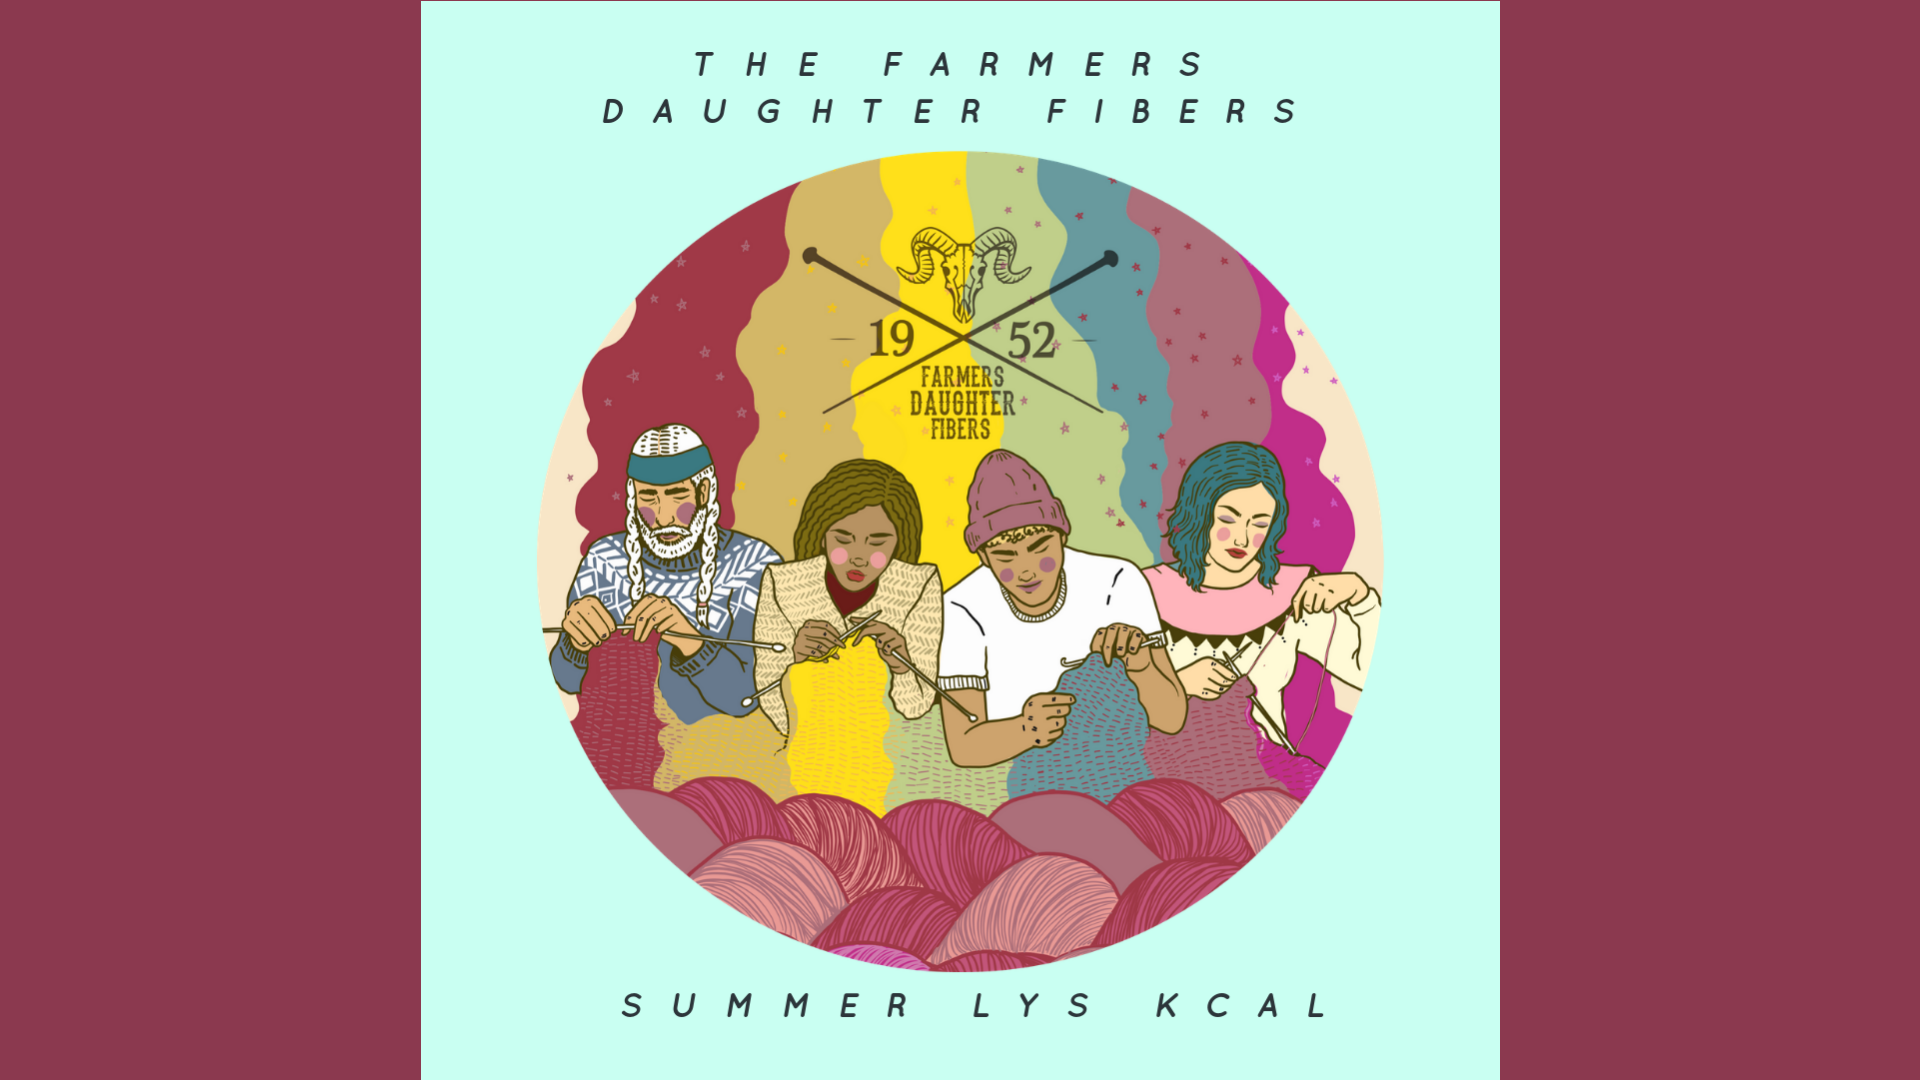 Farmers Daughter Fibers Summer LYS KCAL